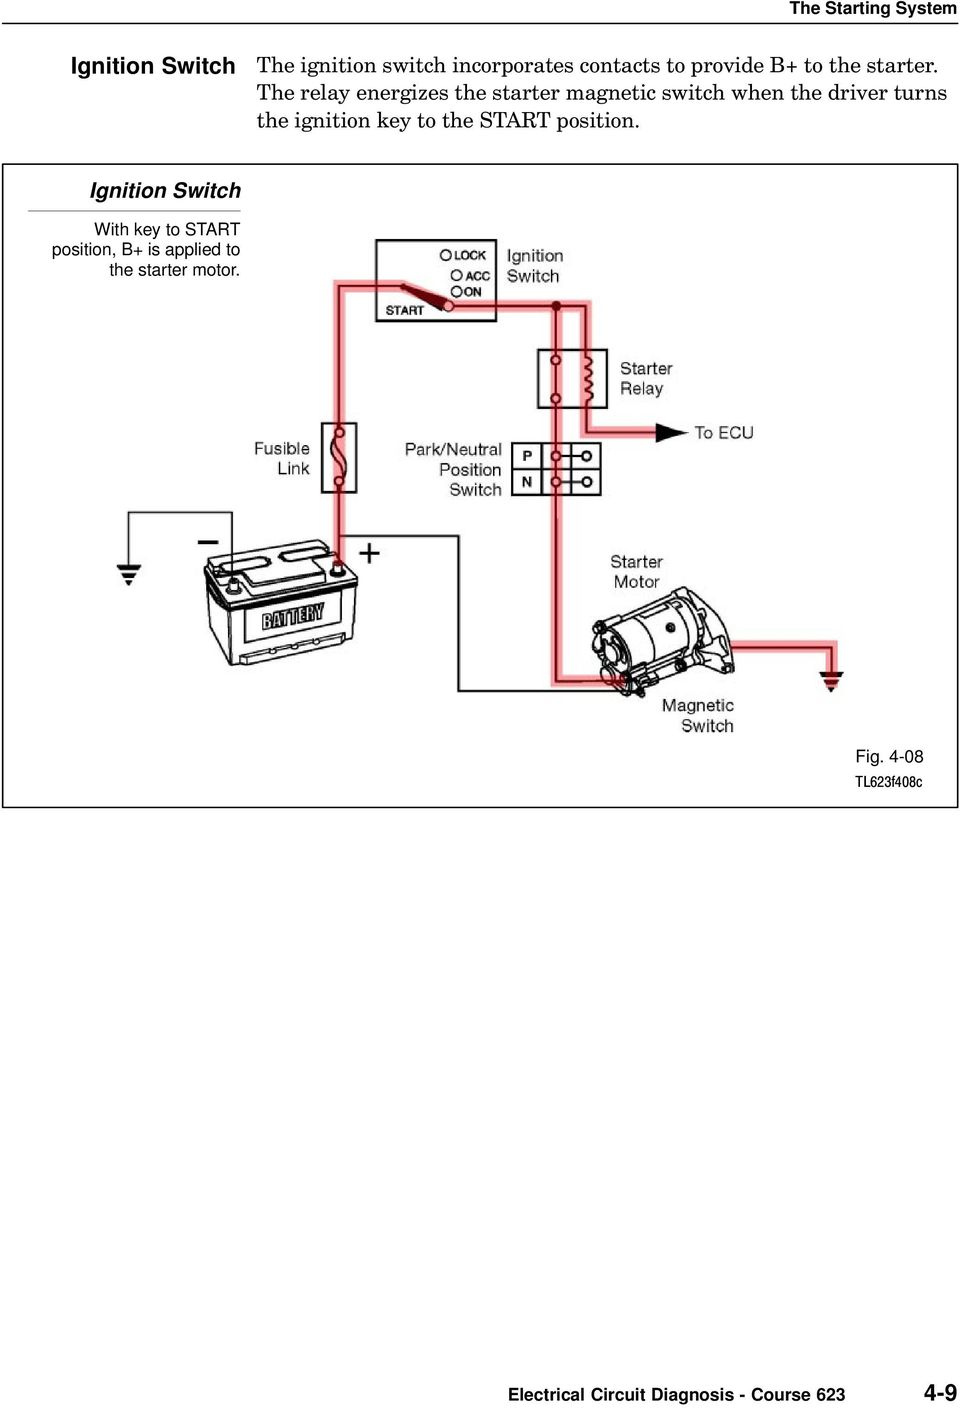 The Starting System Section 4 Overview Starter Fig 9 An Electric Circuit With A Switch Tl623f408c Electrical Diagnosis Course Relay Energizes Magnetic When Driver Turns Ignition Key To